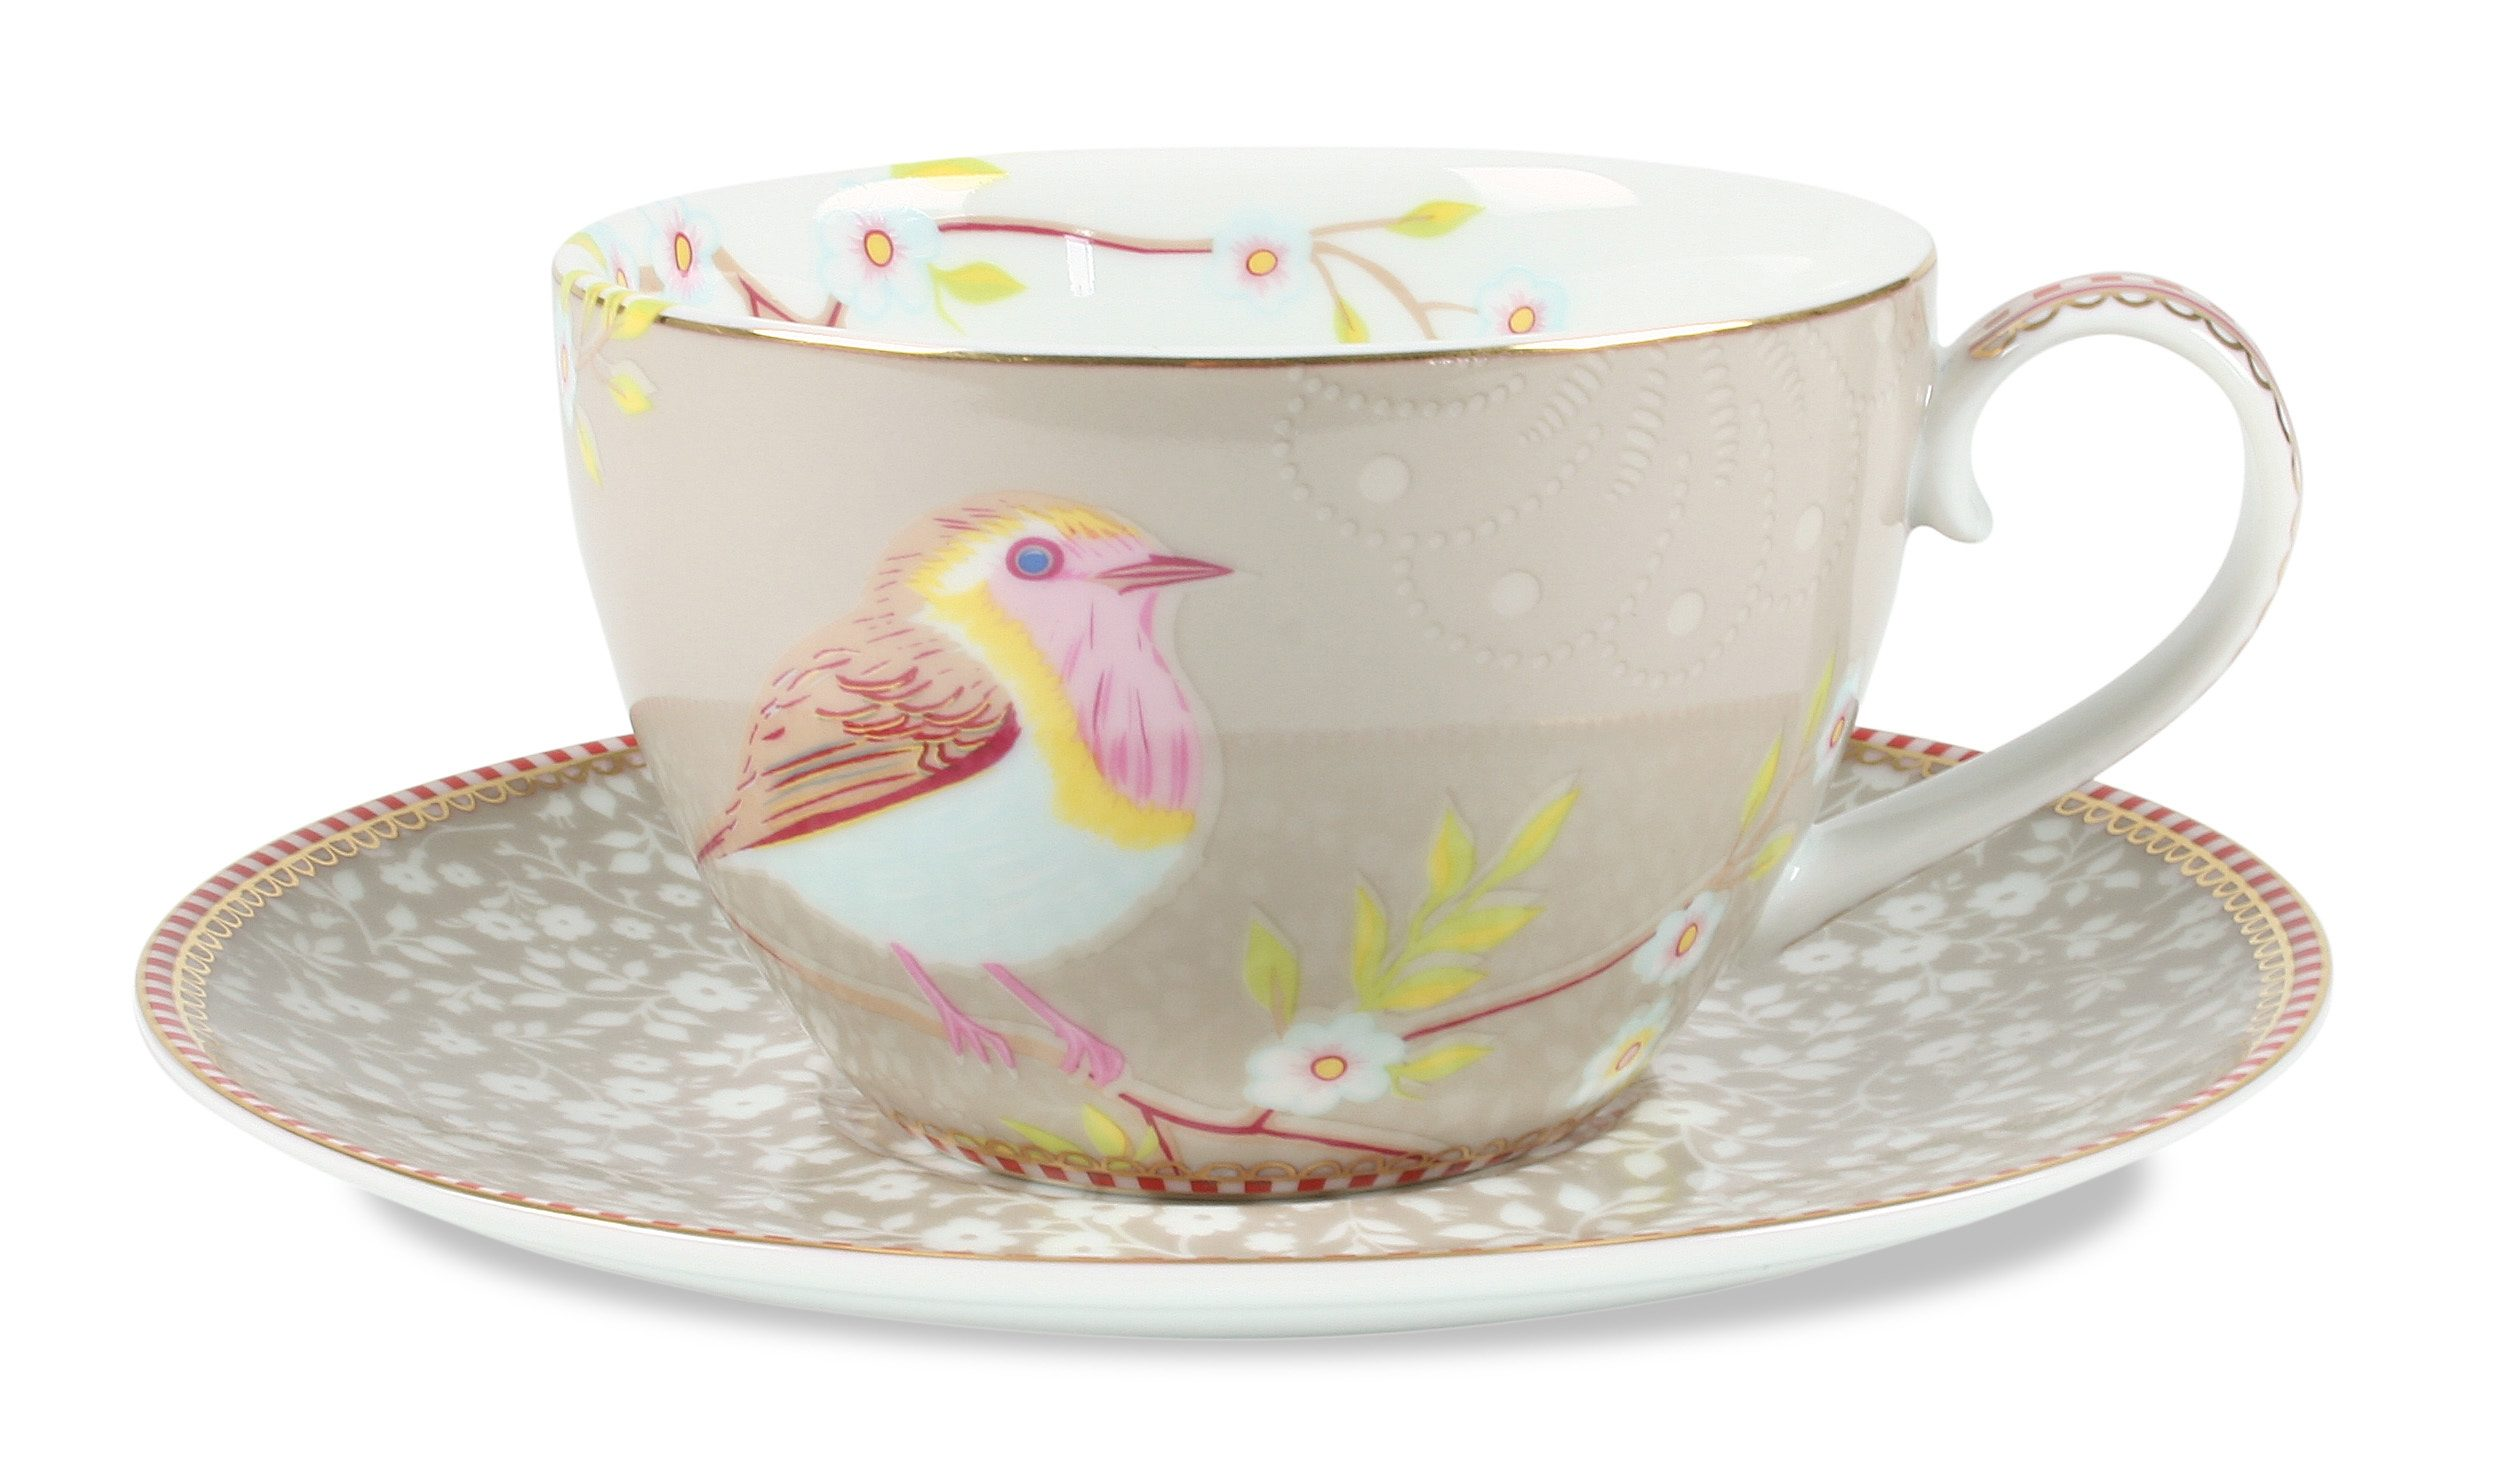 Bone China Porzellan Kaffeetasse Mit Untertasse »early Bird« (12er-set), Pip